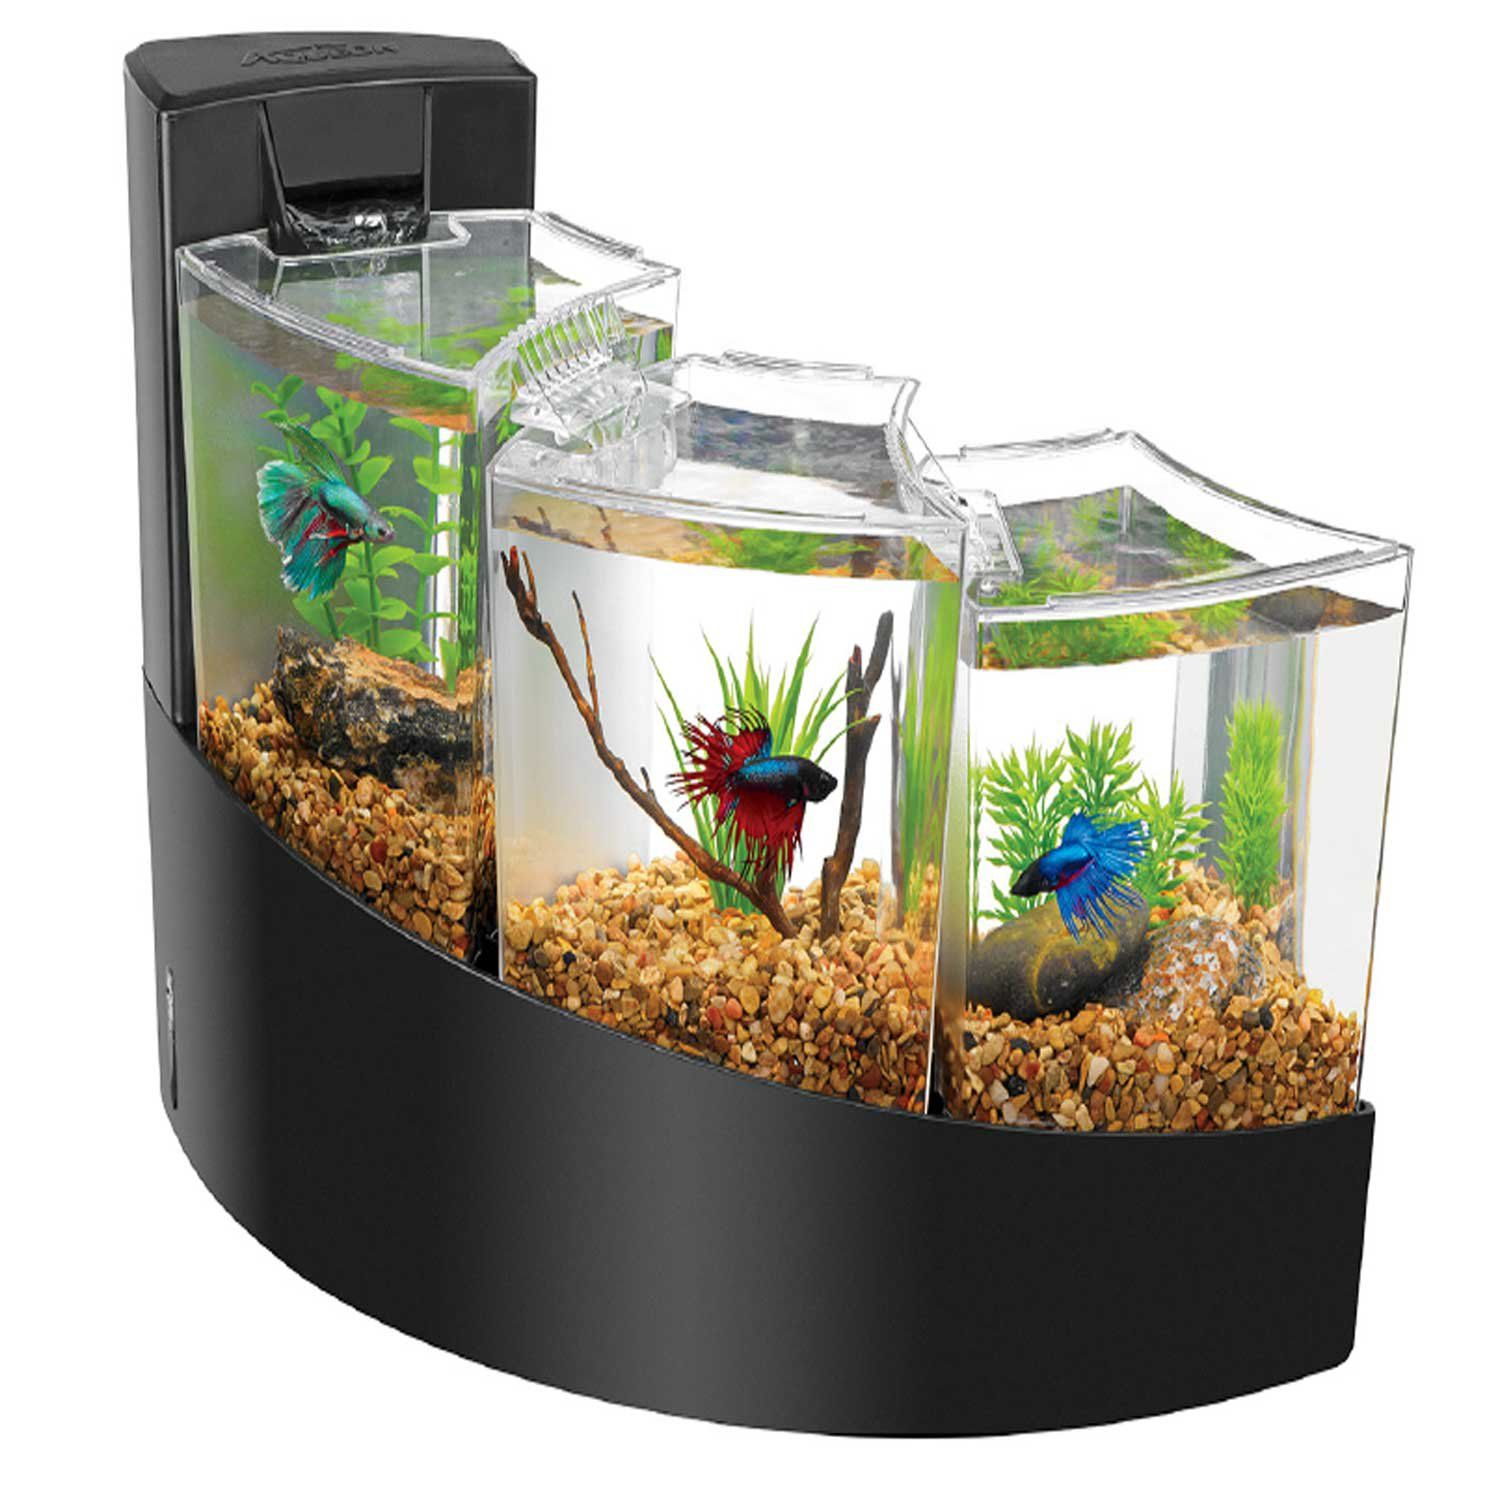 aqueon betta falls aquarium kit in black aqueon betta